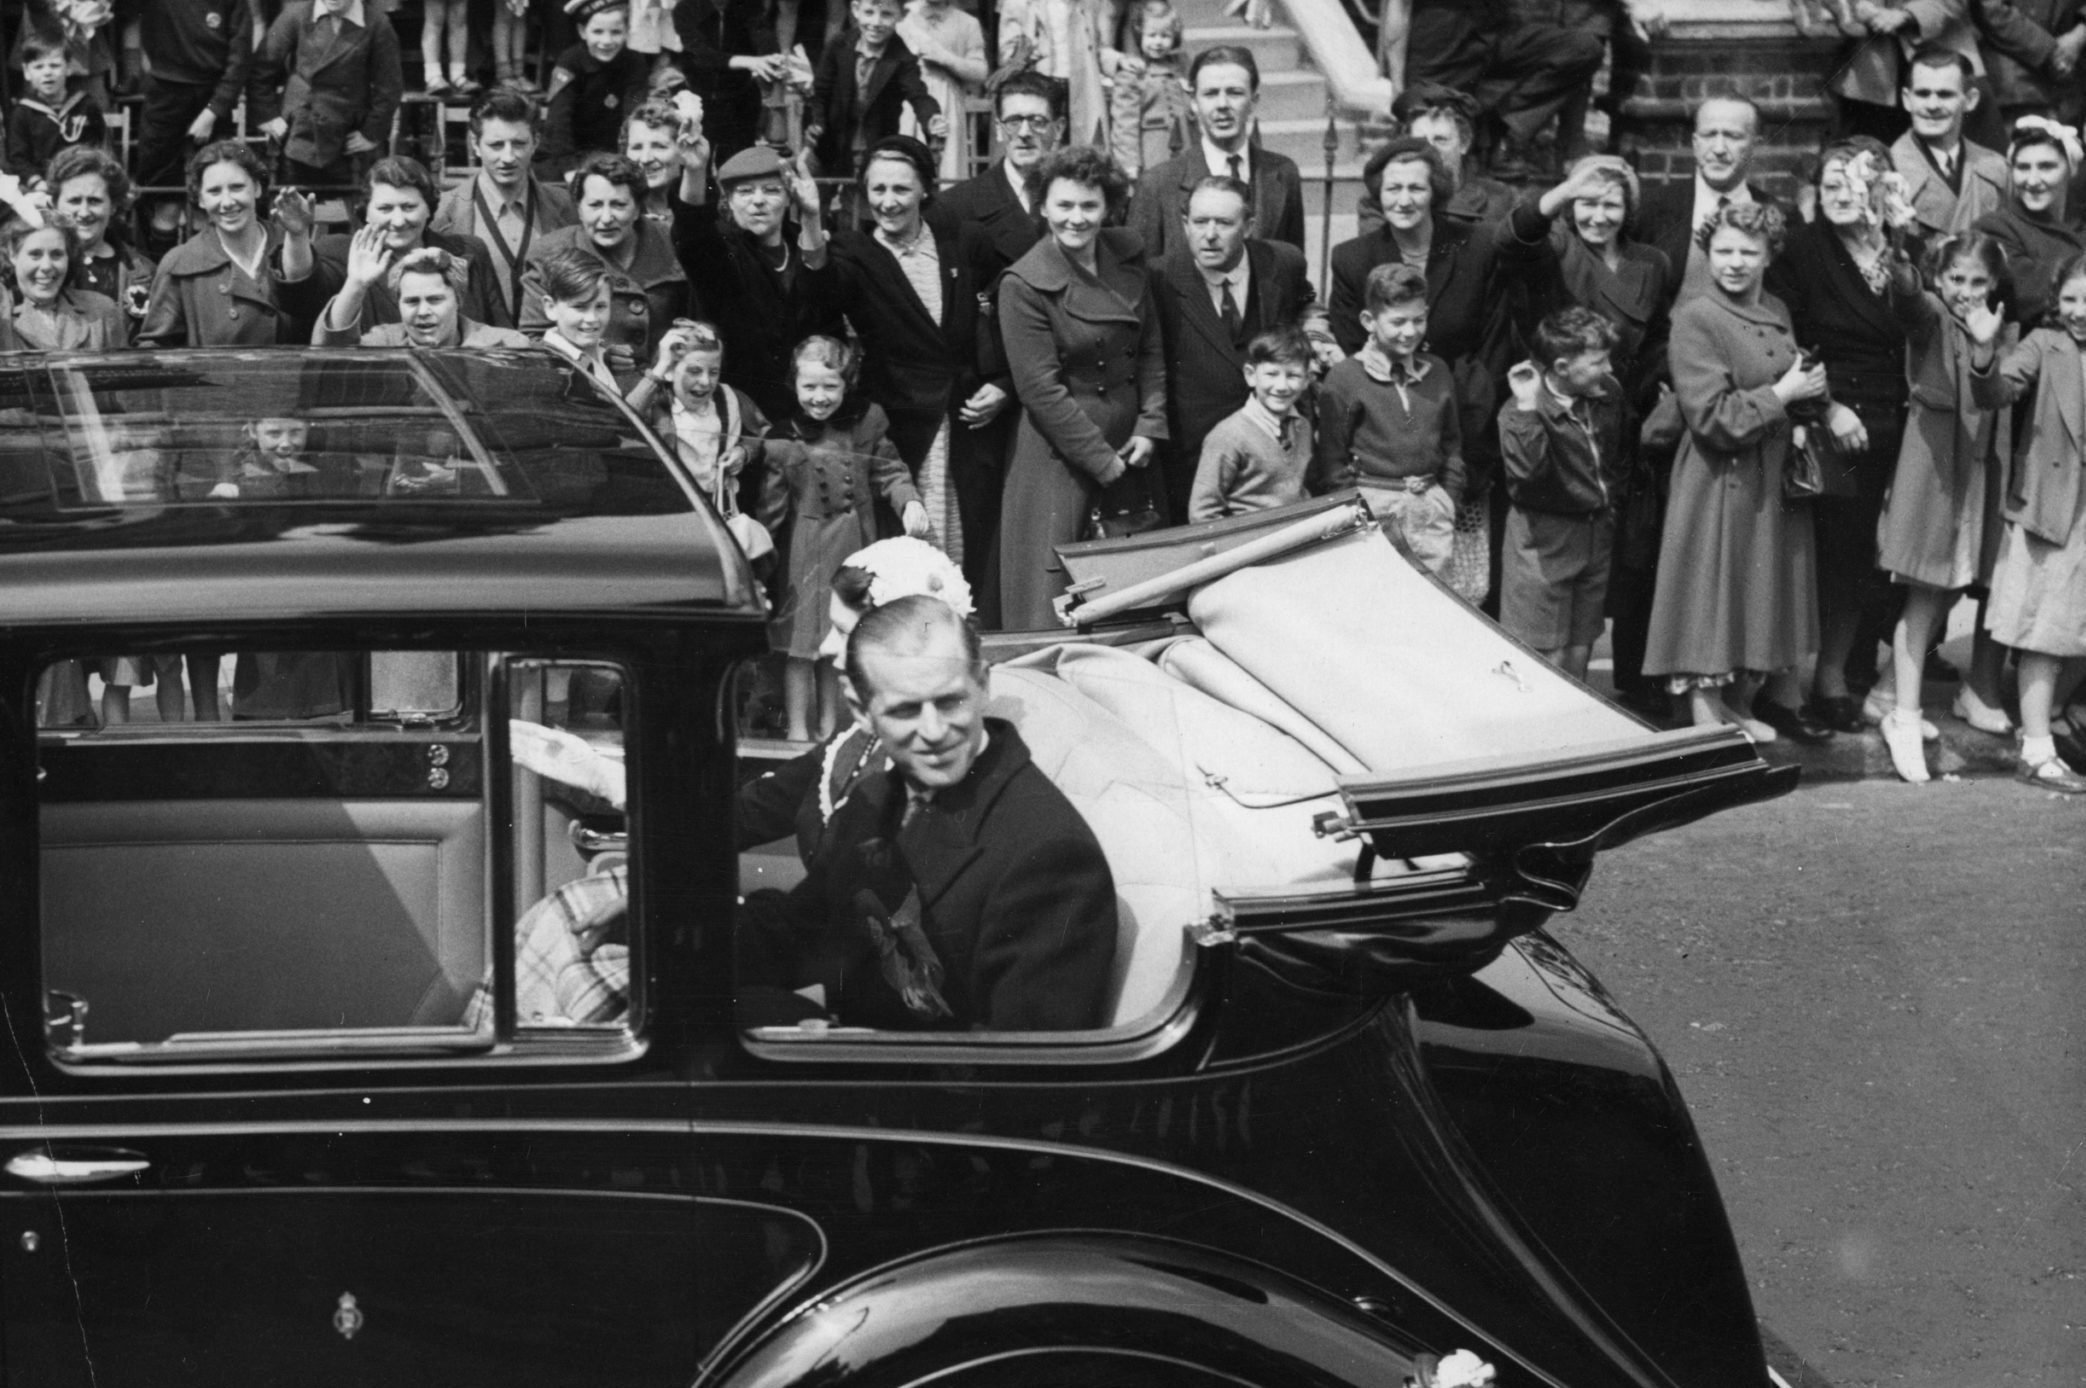 Royalty - Coronation of Queen Elizabeth II – London